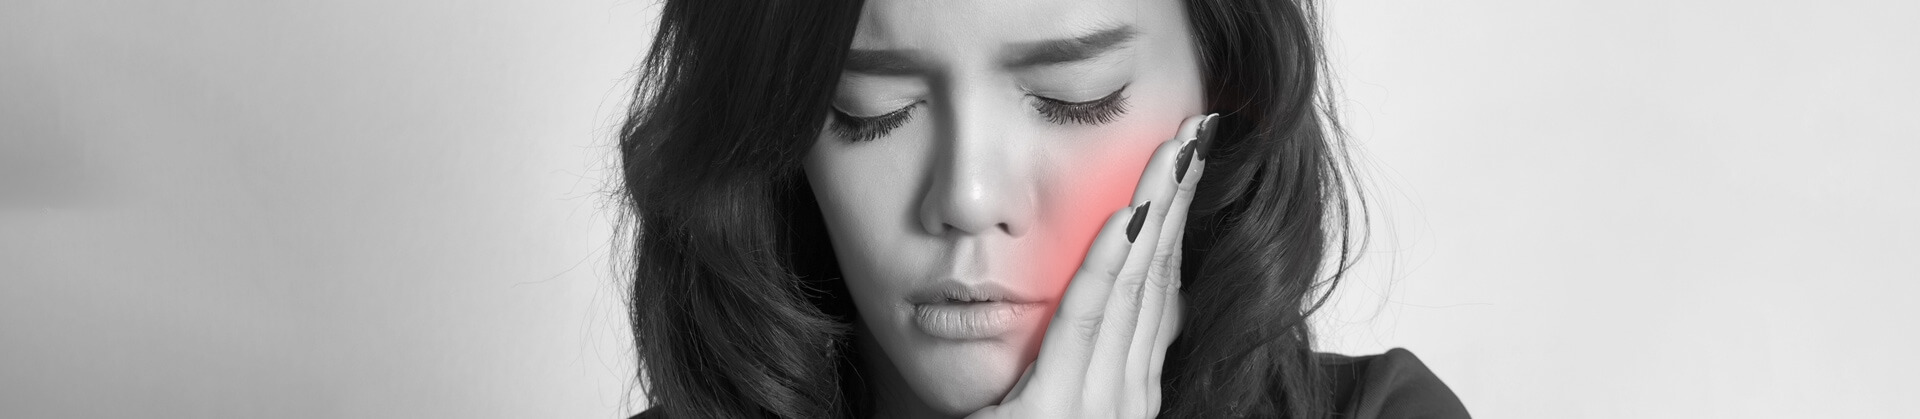 Woman in pain touching her cheeks